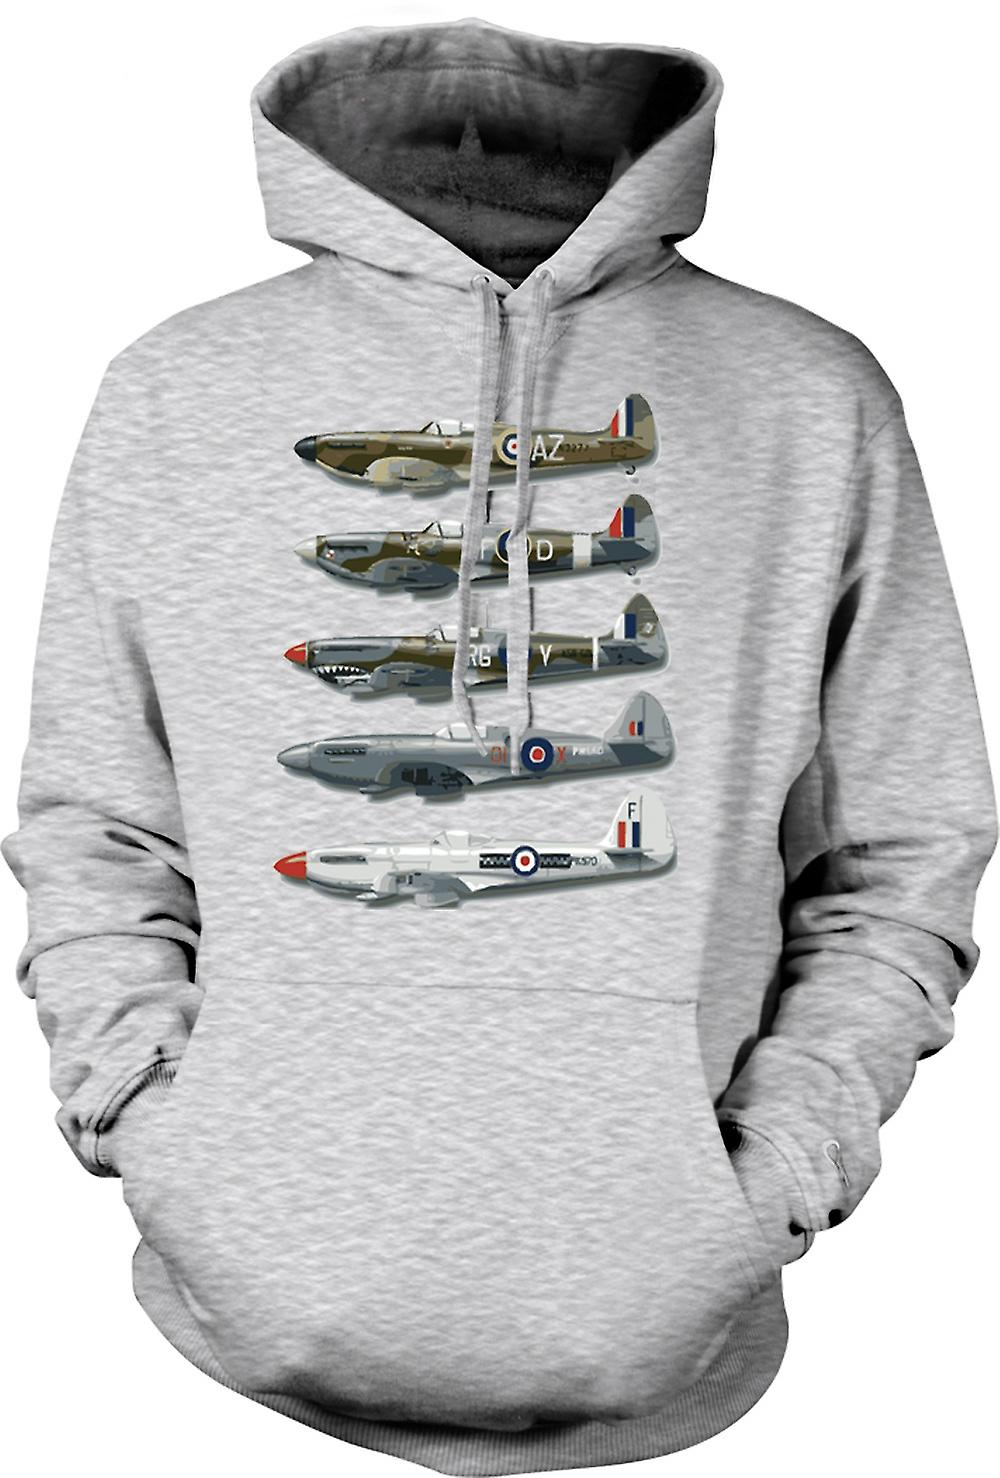 Mens Hoodie - 5 Spitfires Collage - Quote